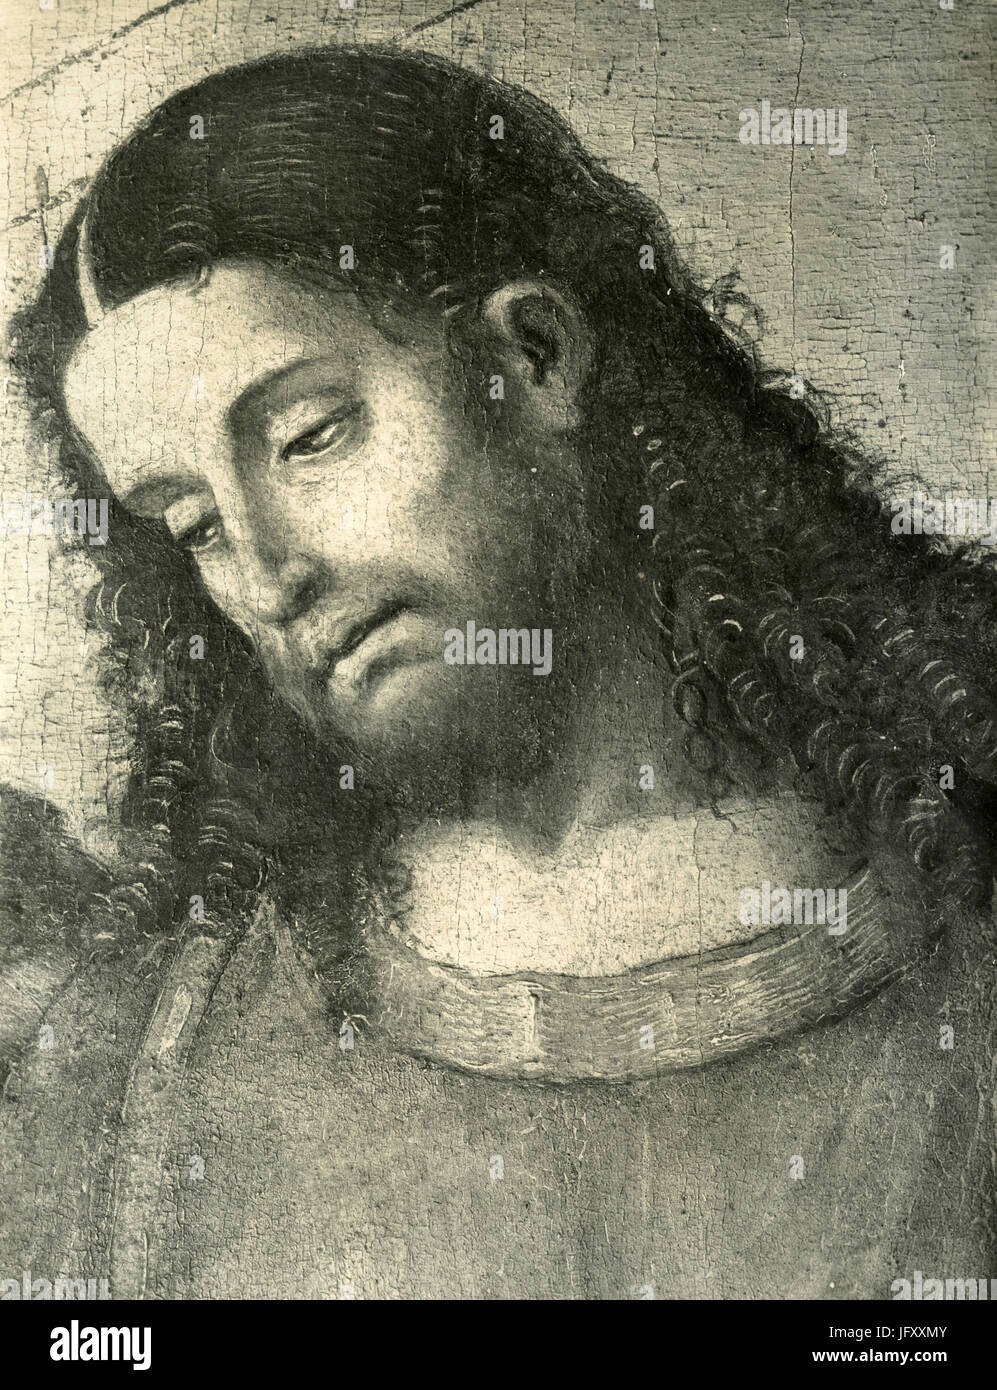 The head of Jesus Christ, painting detail of the Institution of Eucharist, by Luca Signorelli, Cortona, Italy - Stock Image